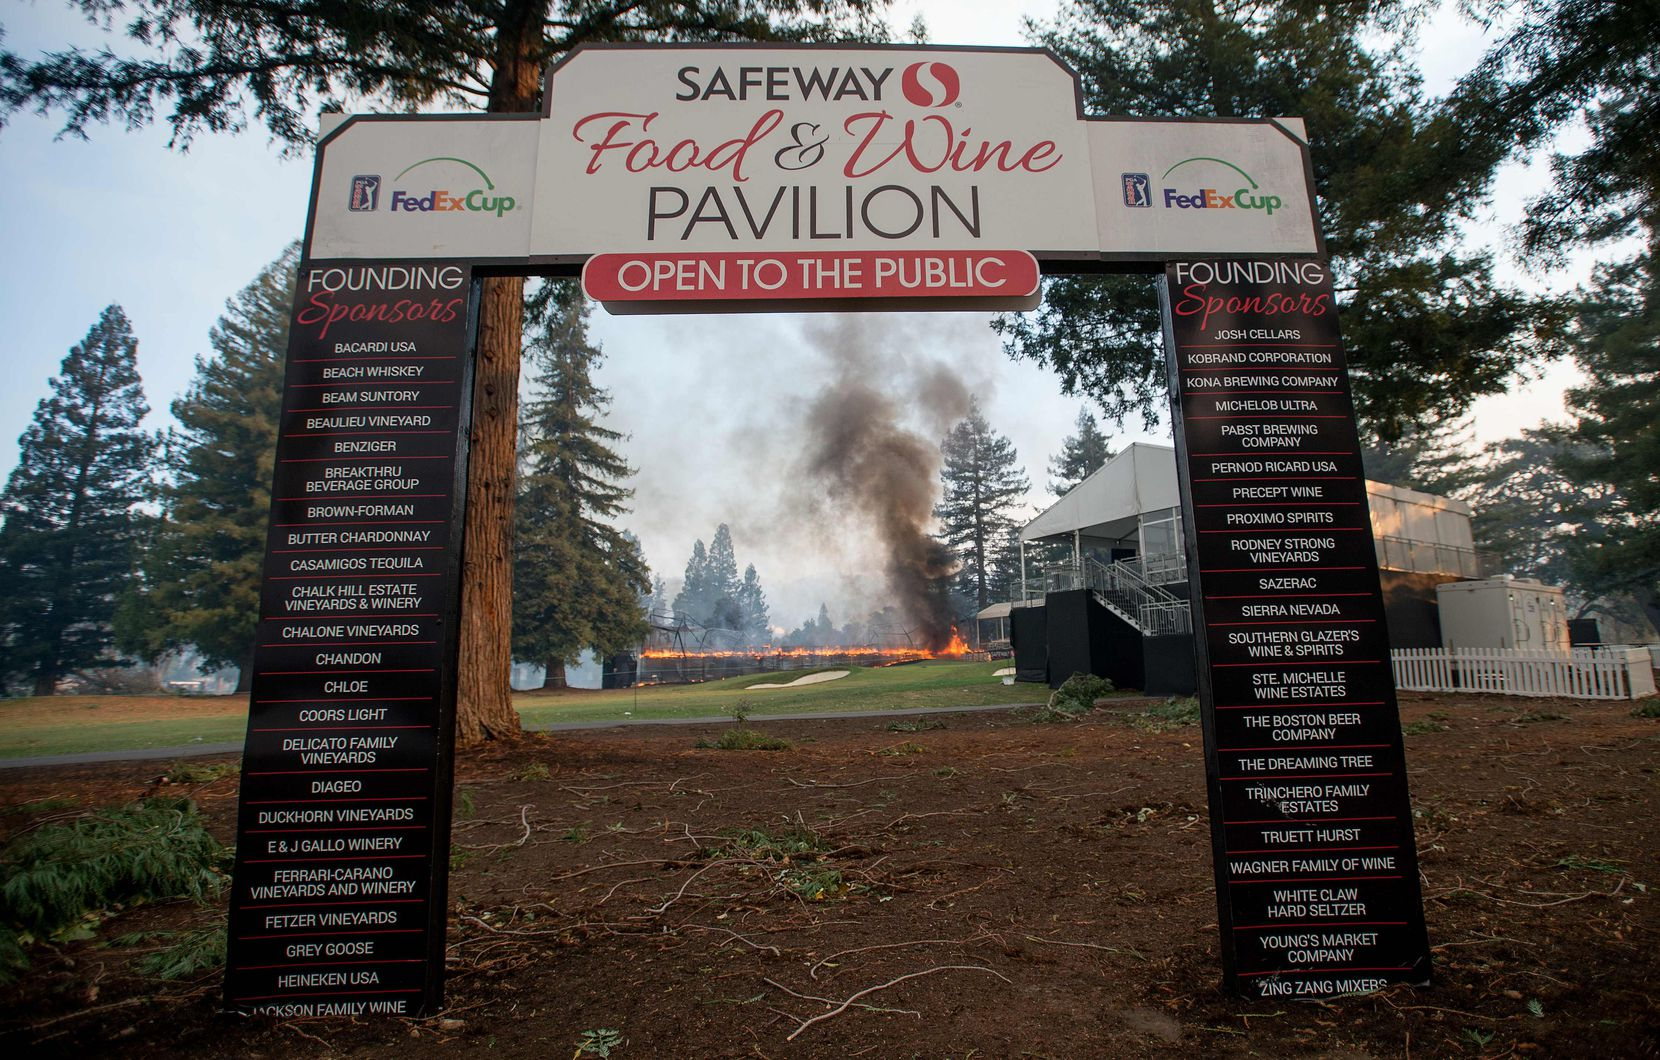 A tent structure built for the 2017 Safeway Open burns on a golf course at the Silverado Resort and Spa in Napa, California on October 9, 2017, as multiple wind-driven fires continue to whip through the region.